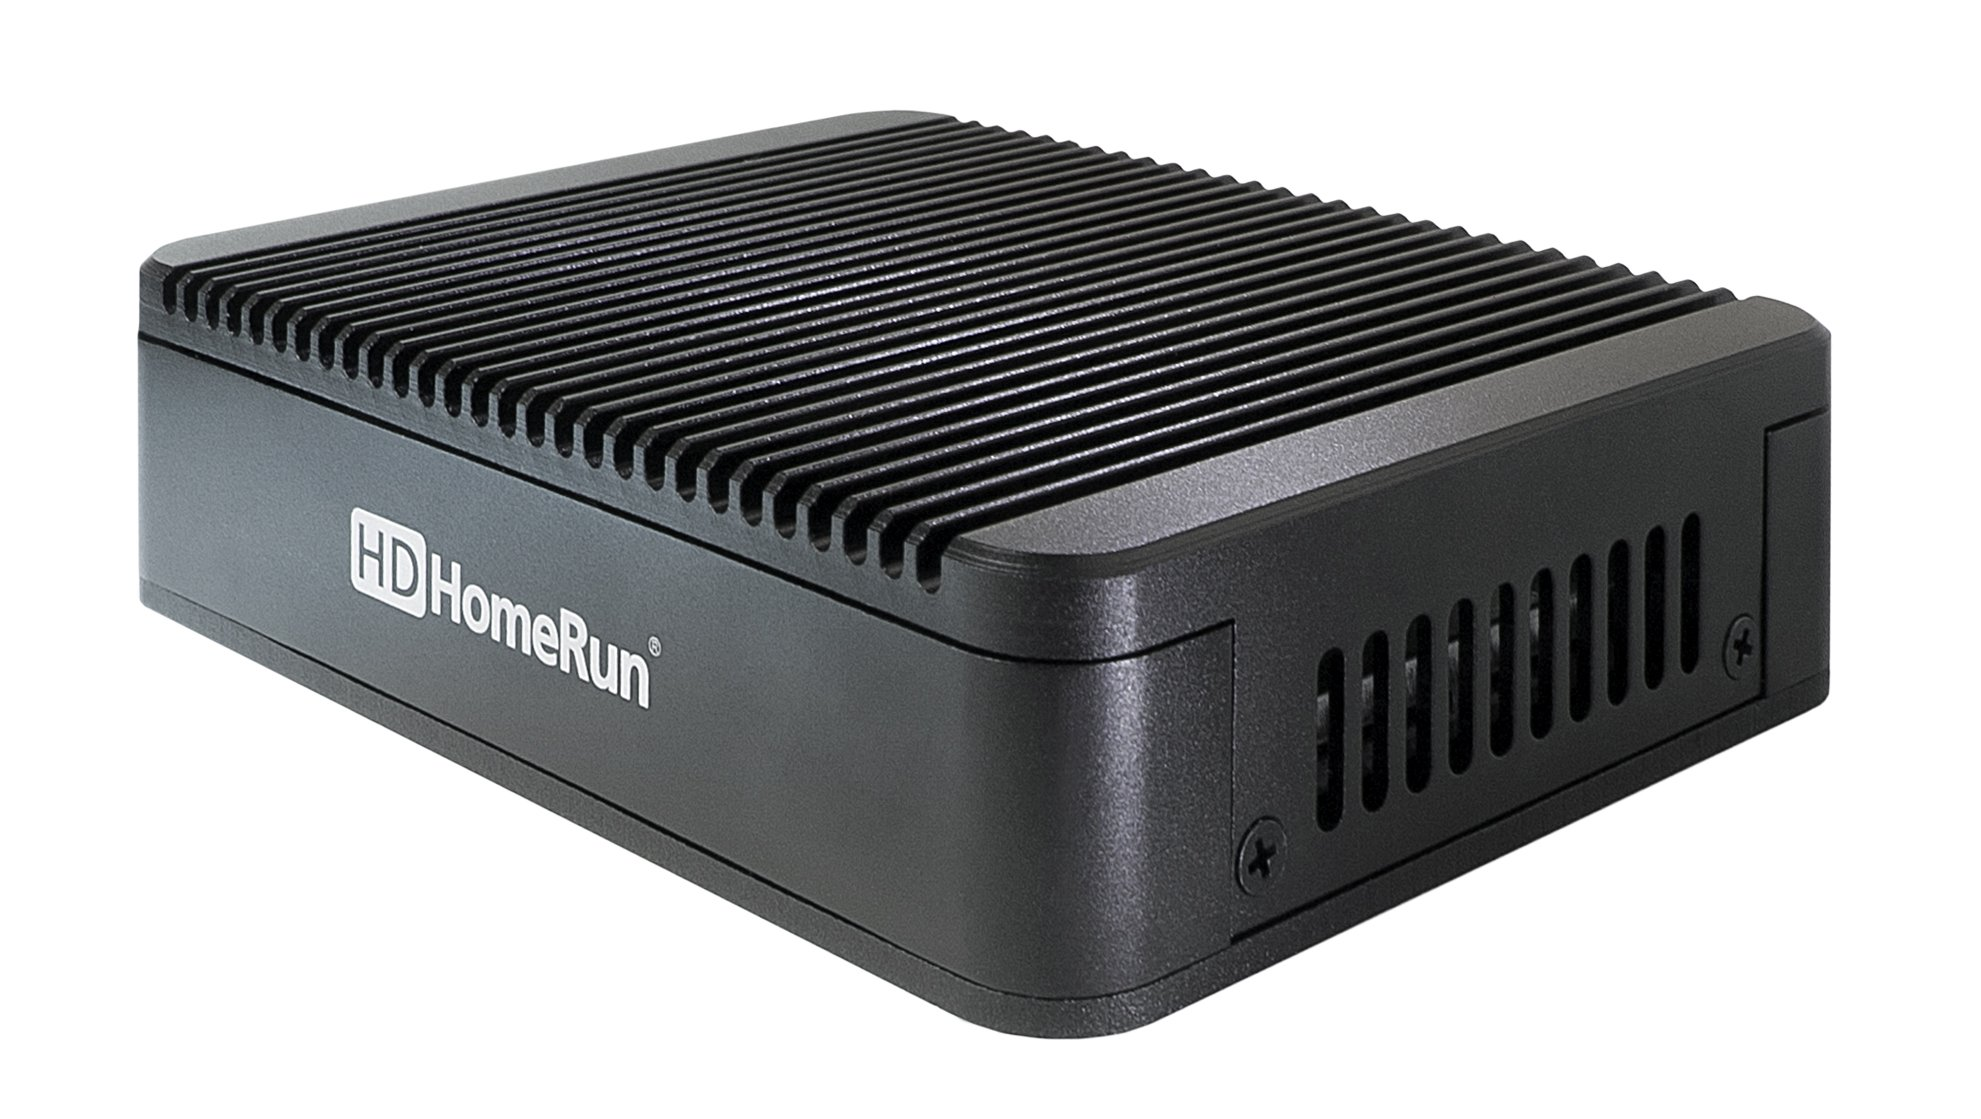 SiliconDust HDHomeRun EXTEND.FREE Broadcast HDTV (2-Tuner) by SiliconDust